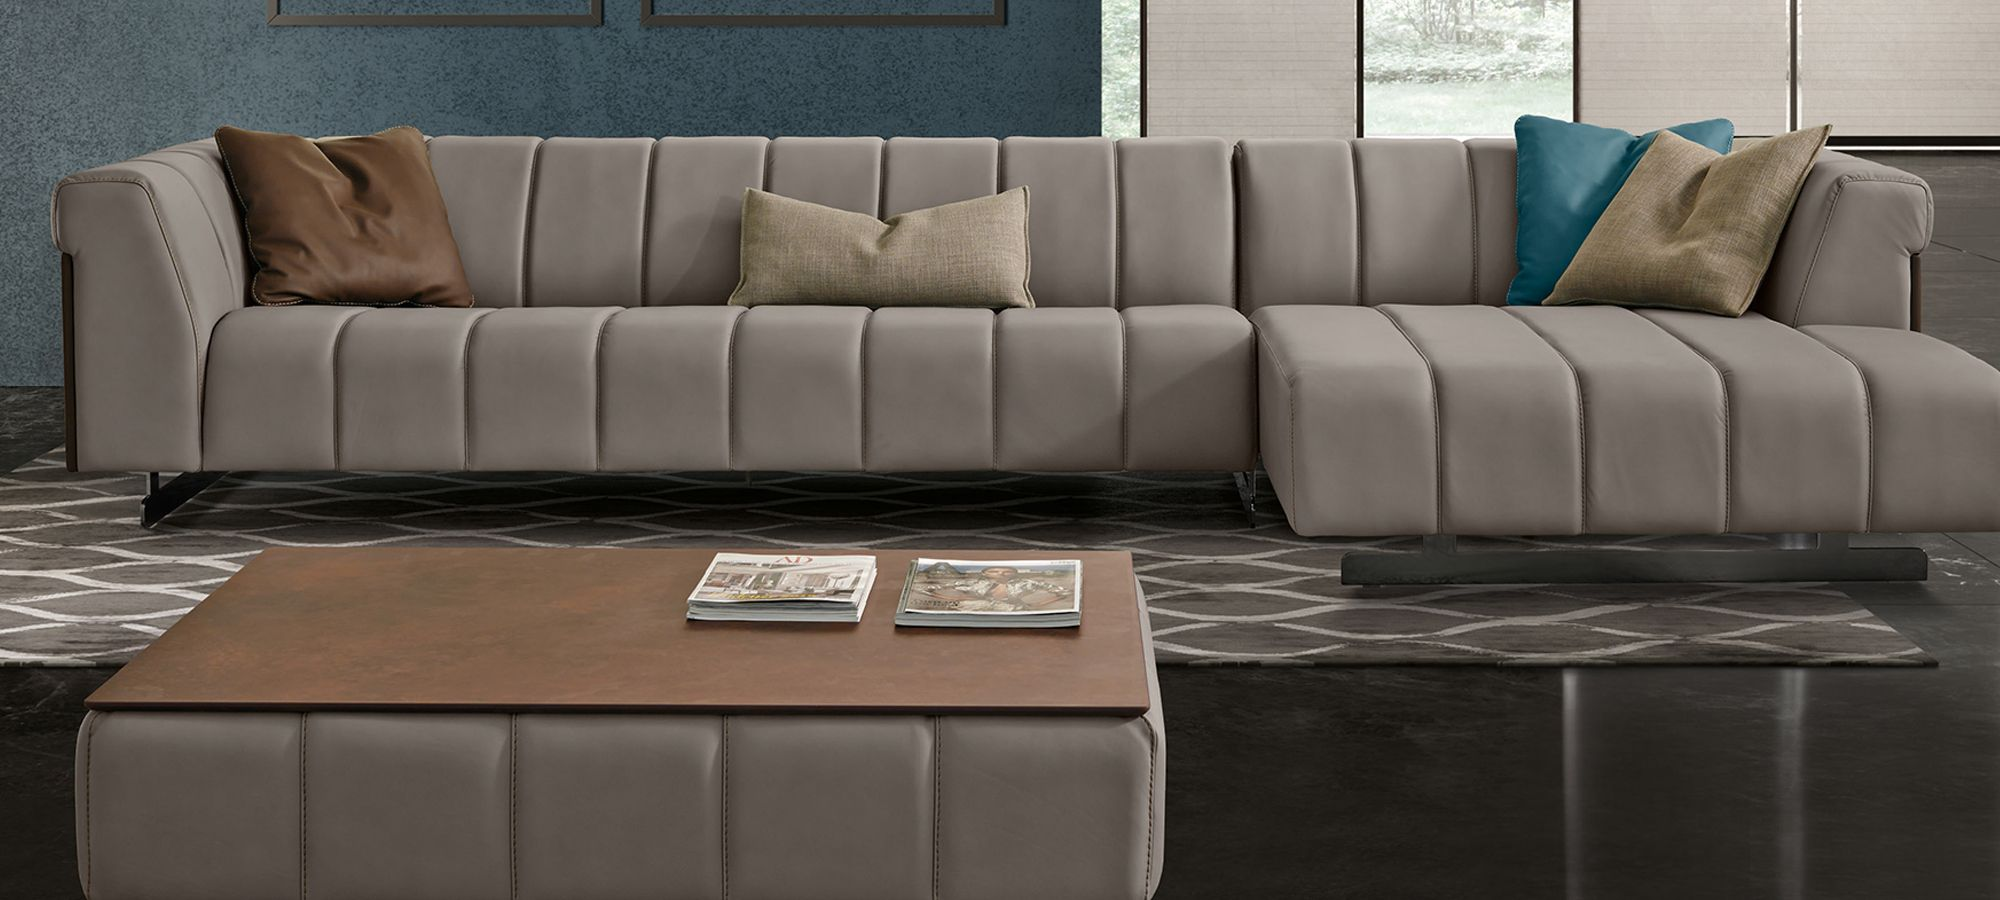 Gamma Nautilus Sofa Design Furniture Luxury Italian Furniture